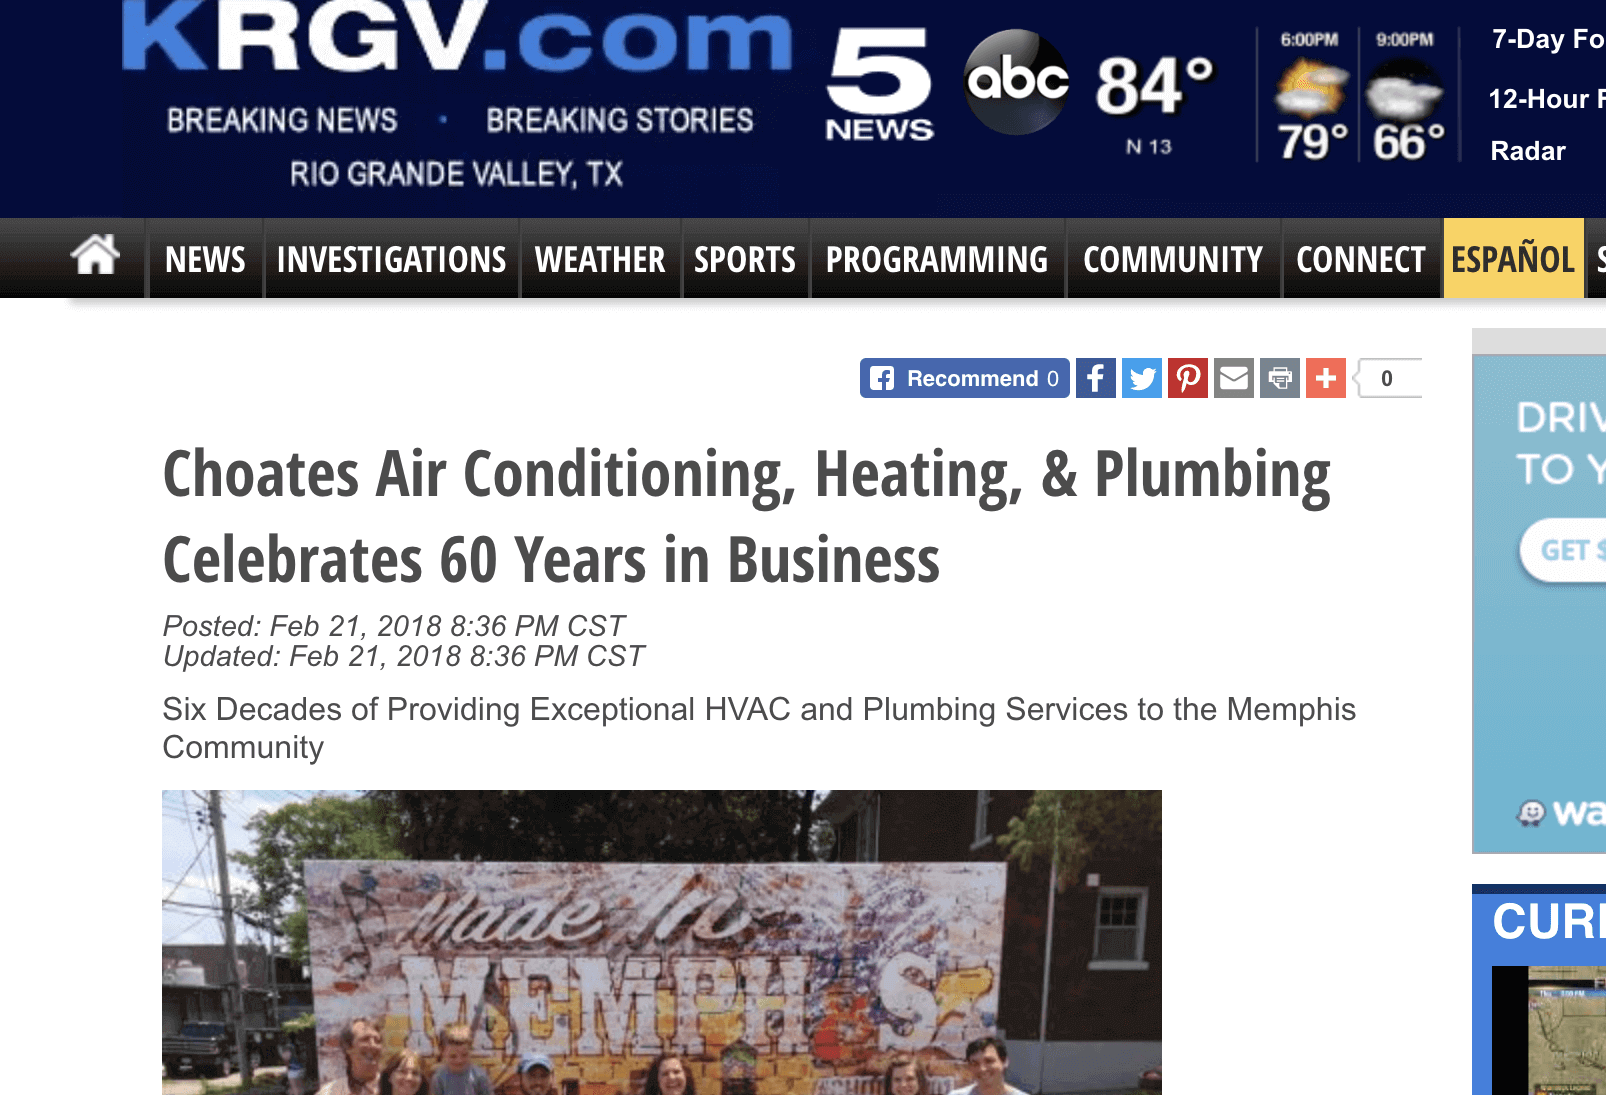 """Featured image for """"Choate's Air Conditioning, Heating, & Plumbing Celebrates 60 Years in Business"""""""